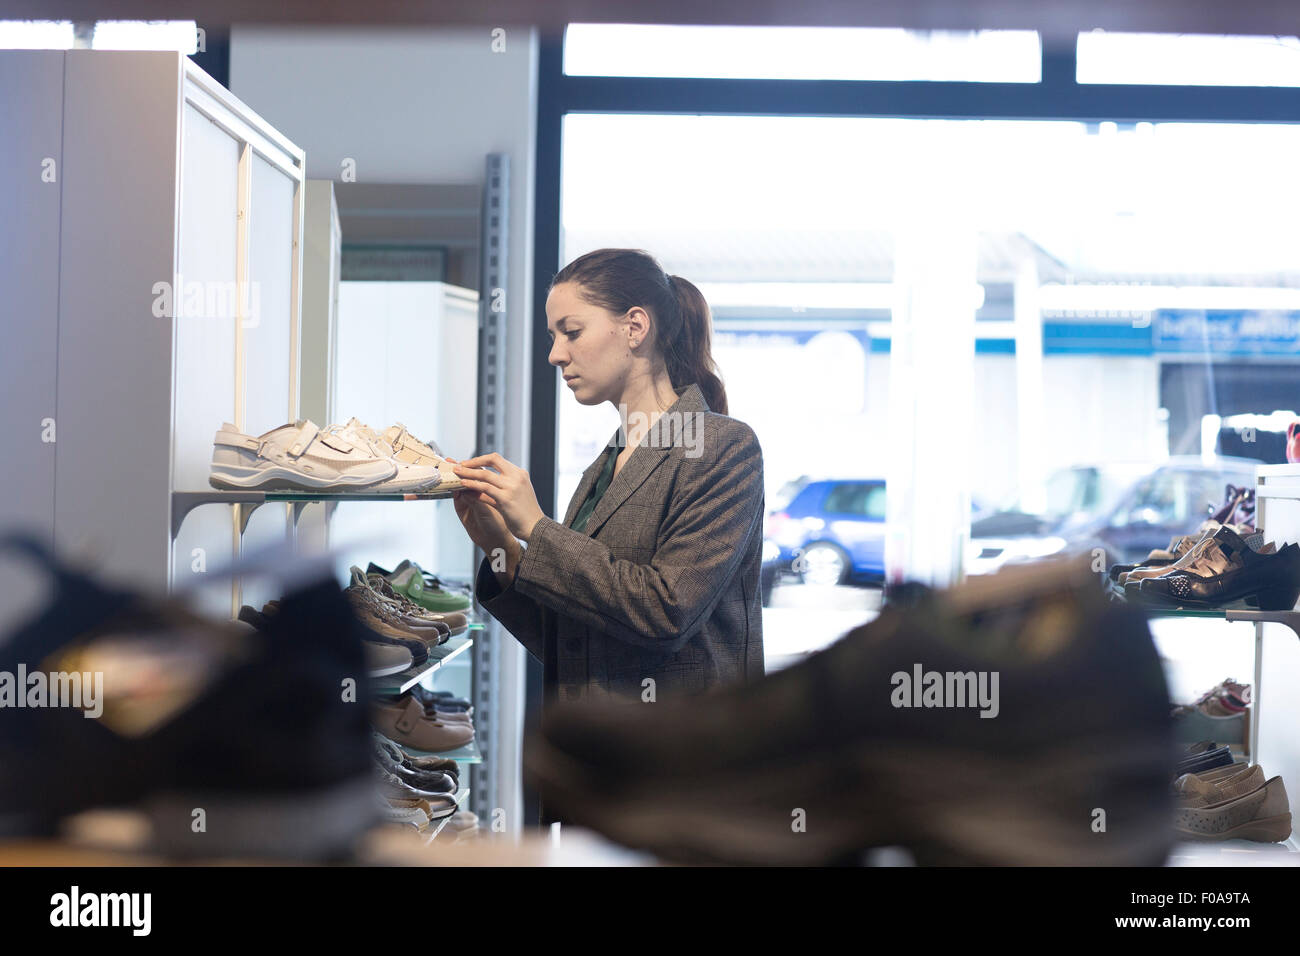 Young female shopper selecting trainer in shoe shop - Stock Image